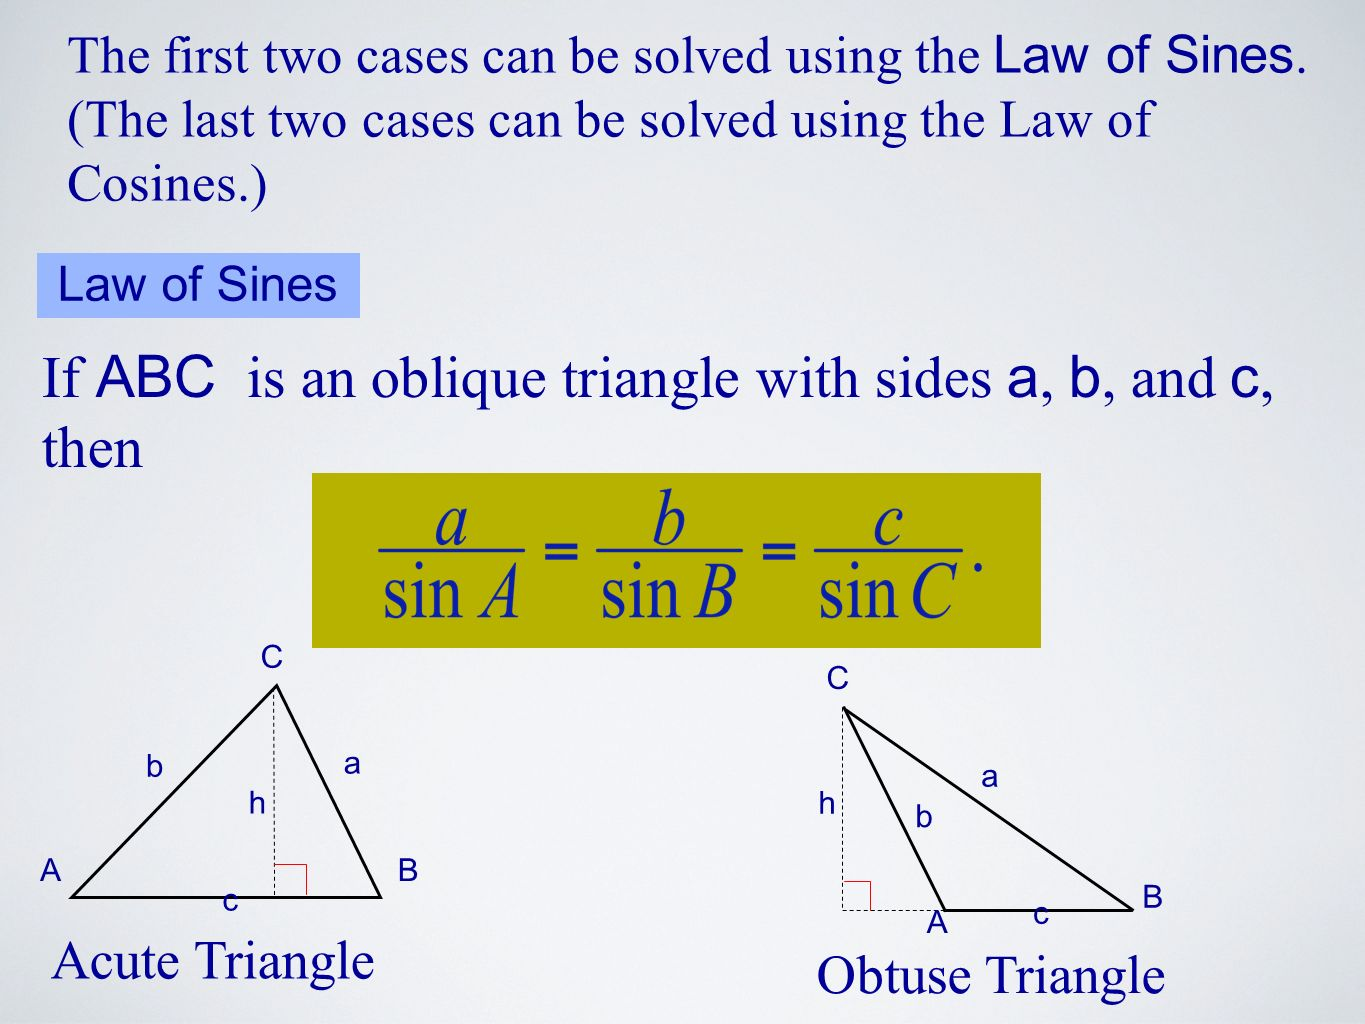 If ABC is an oblique triangle with sides a, b, and c, then